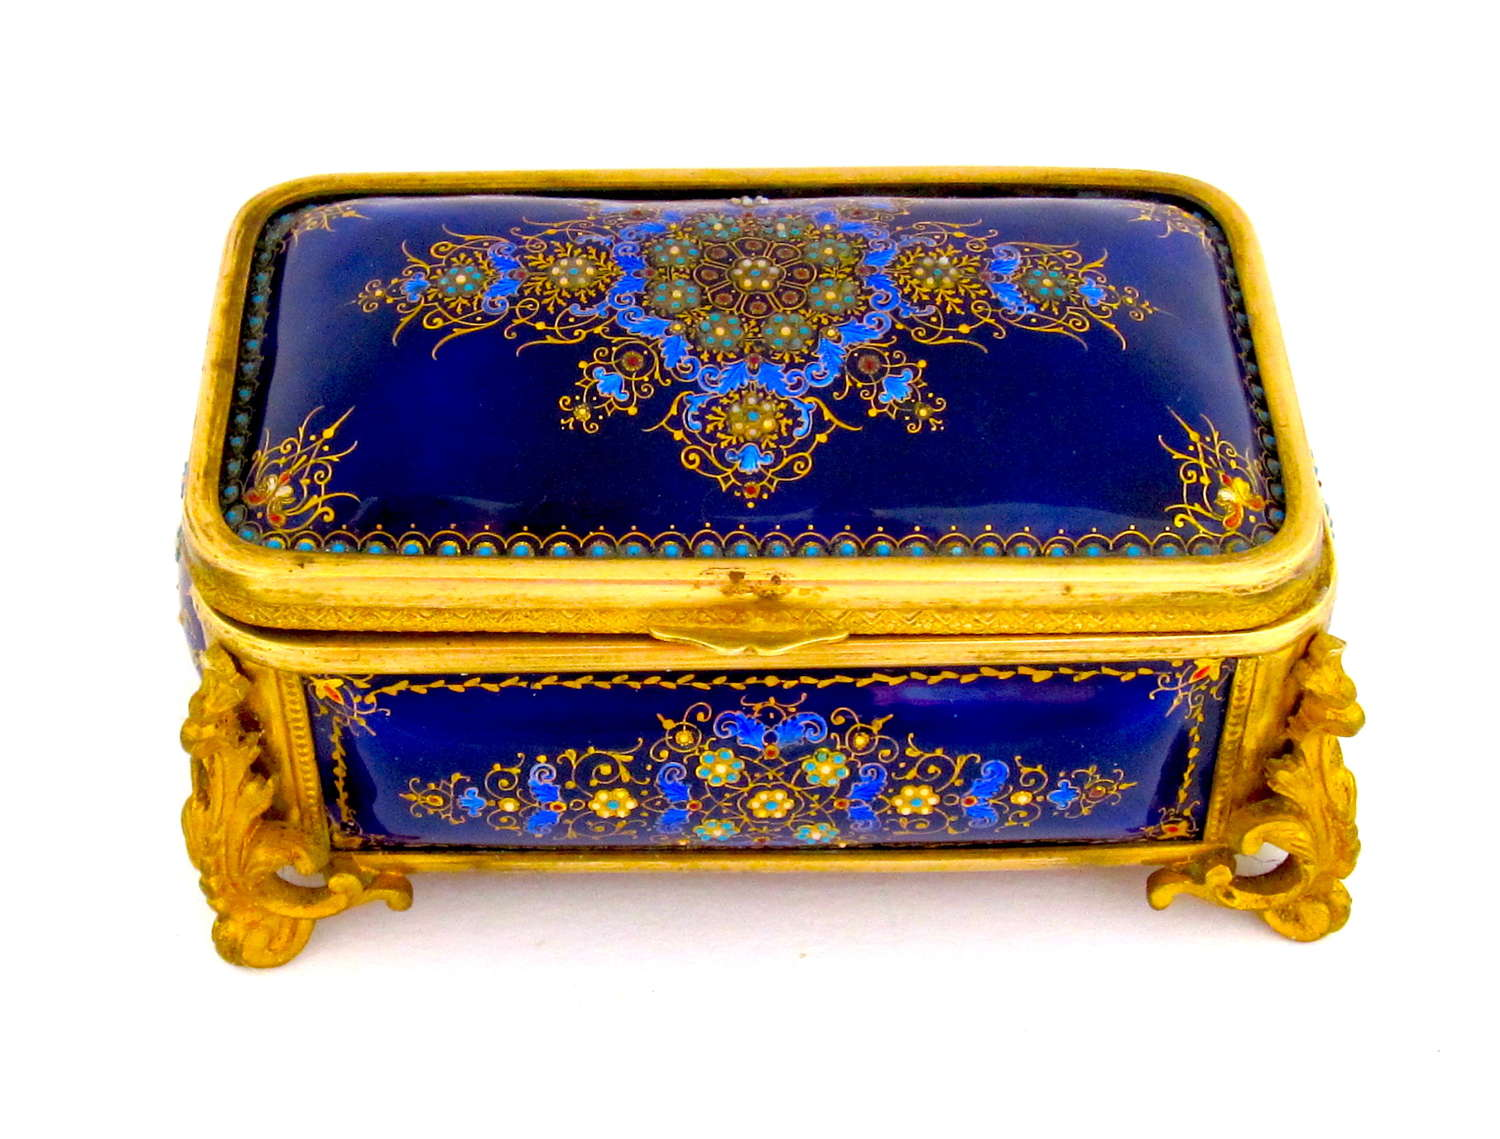 A Superb Antique French Tahan 'Bombe' Jewel Casket